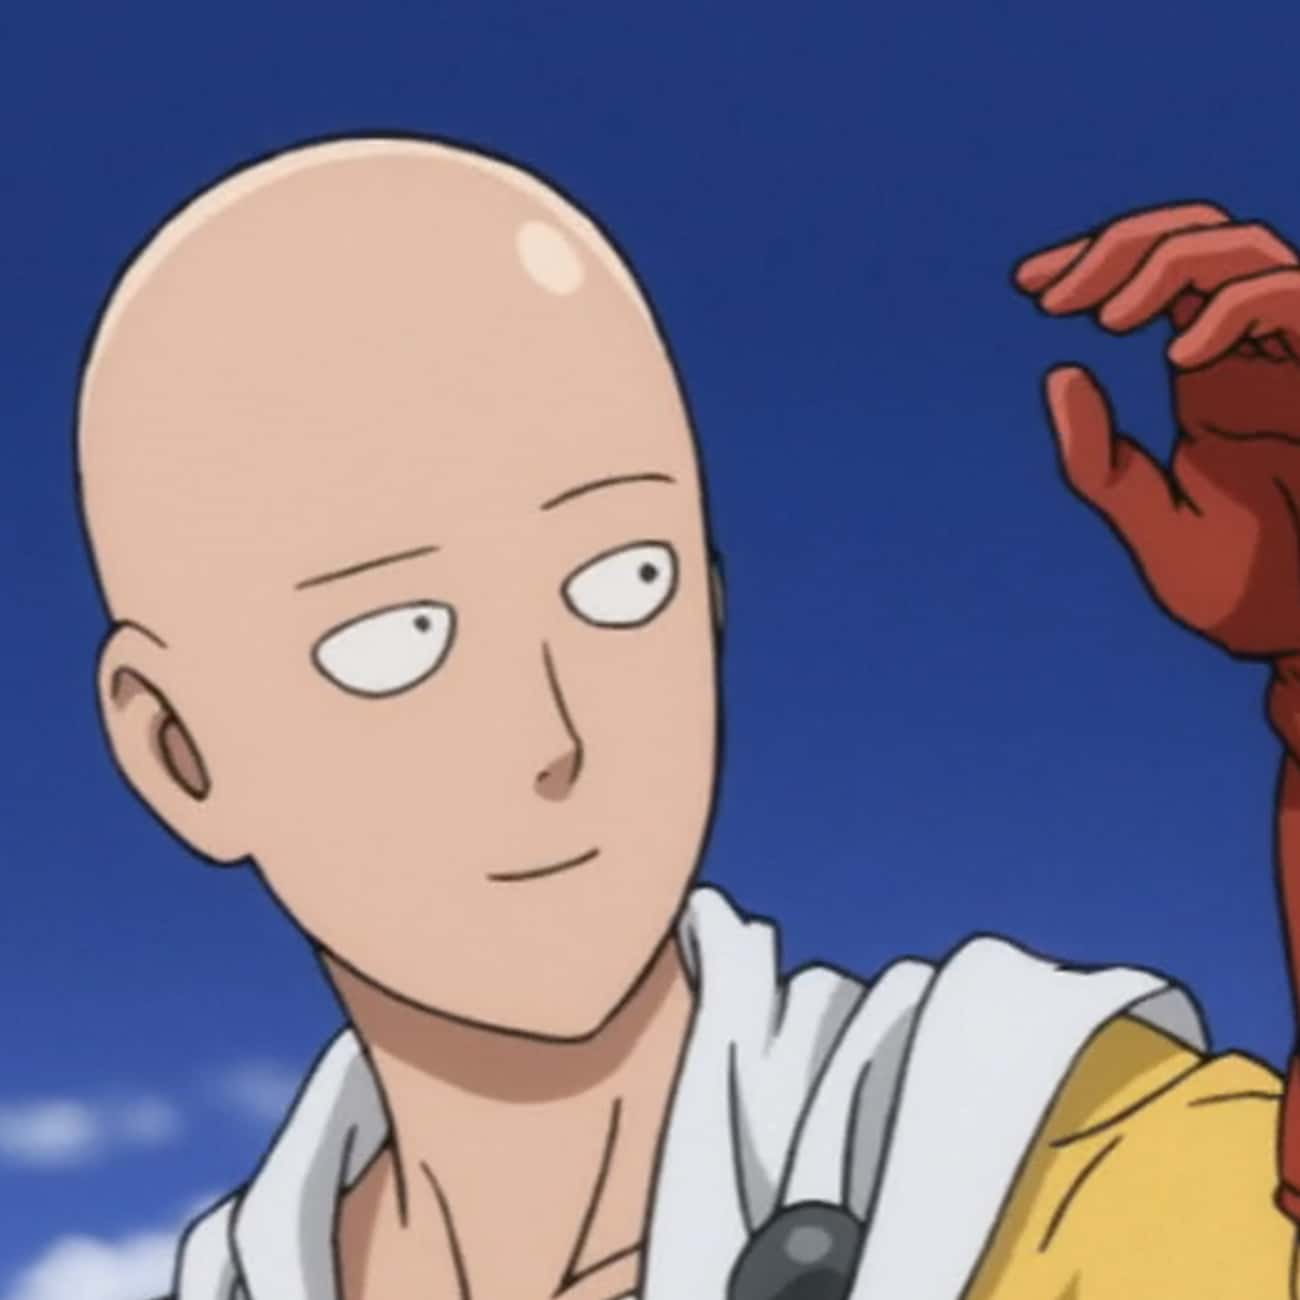 Leave Tomorrow's Problems is listed (or ranked) 4 on the list The Best Saitama Quotes From One Punch Man